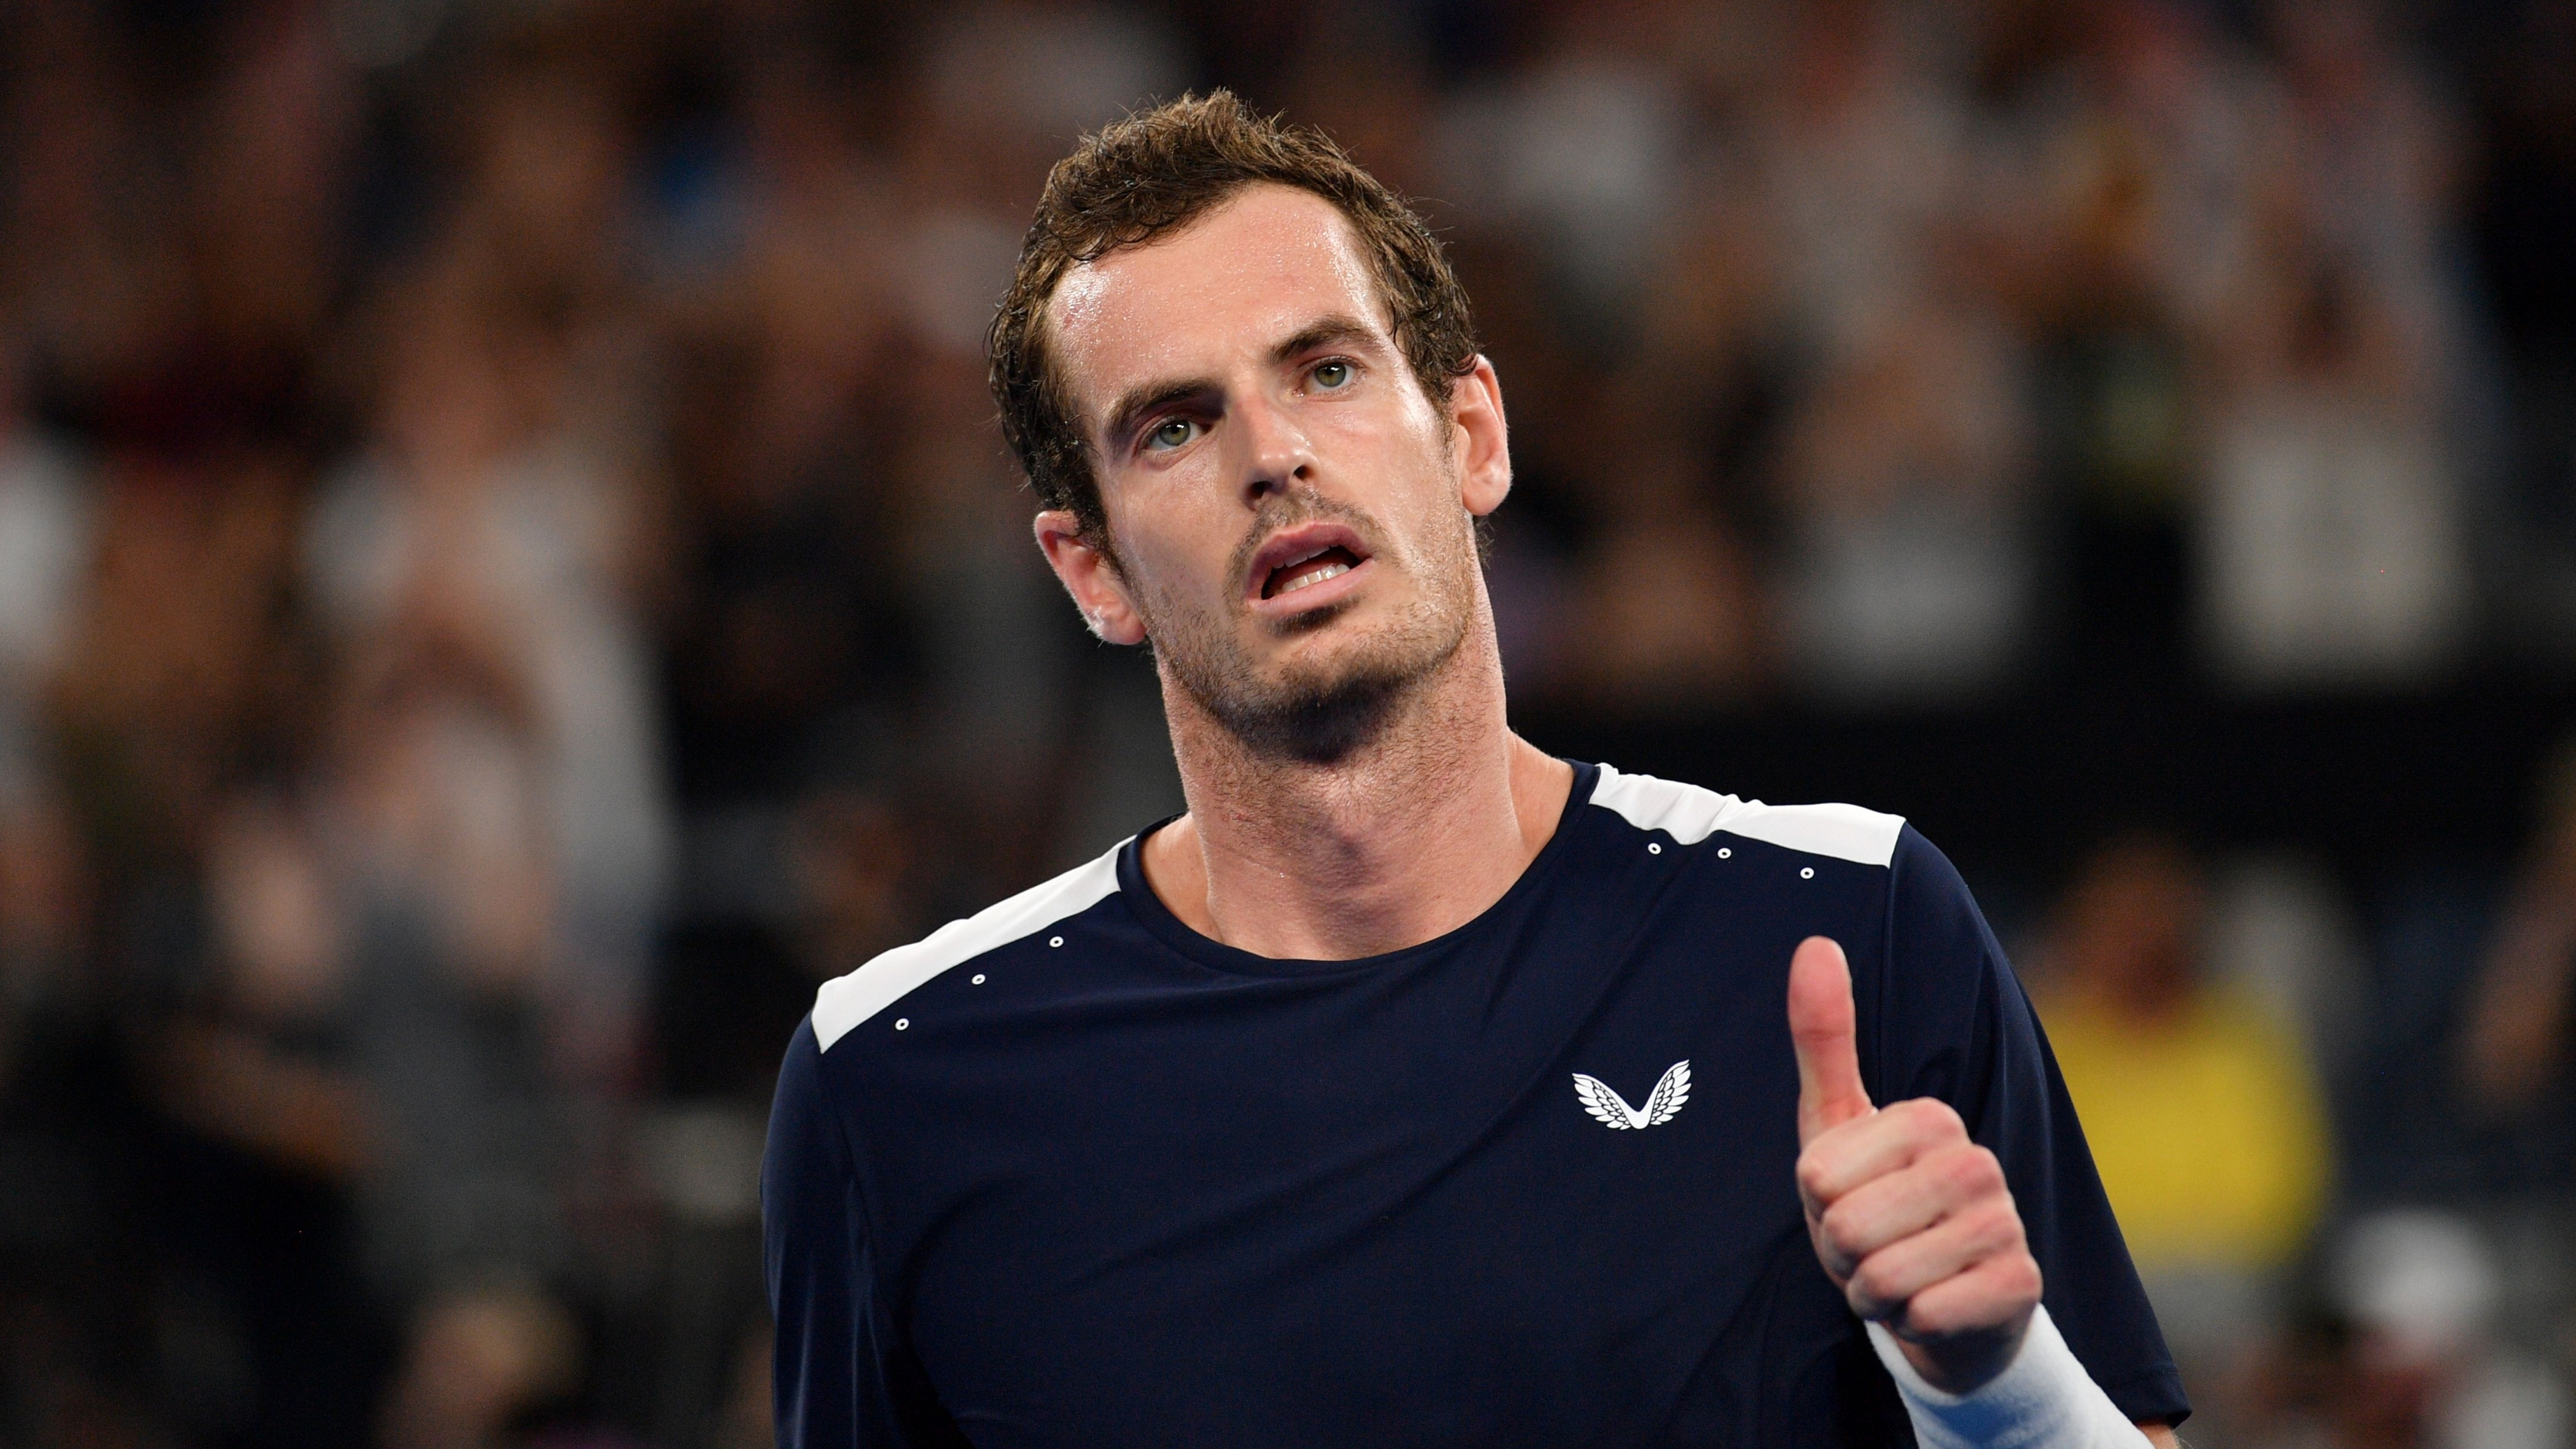 Andy Murray loses retire hip australian open